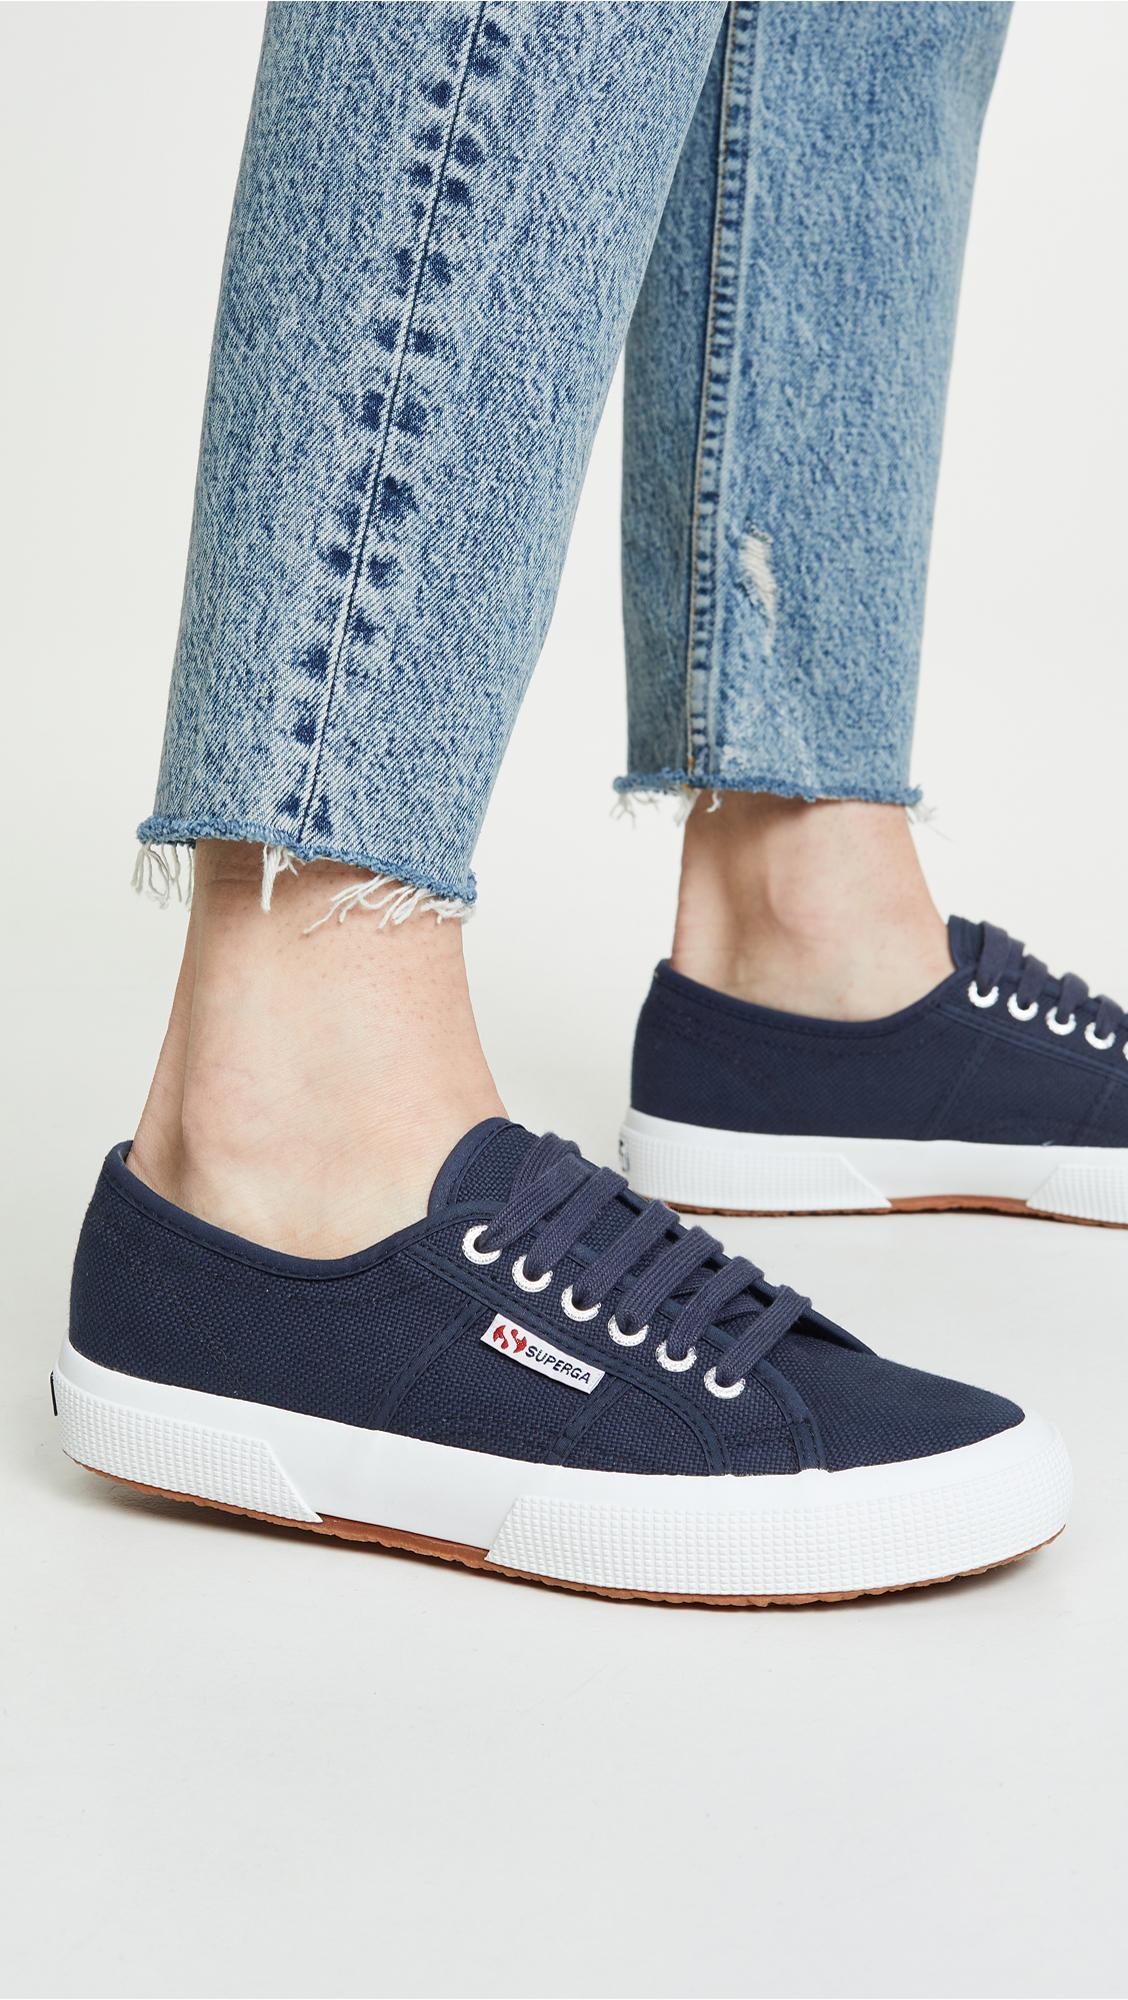 Cotu Classic Lace Up Sneakers in Navy